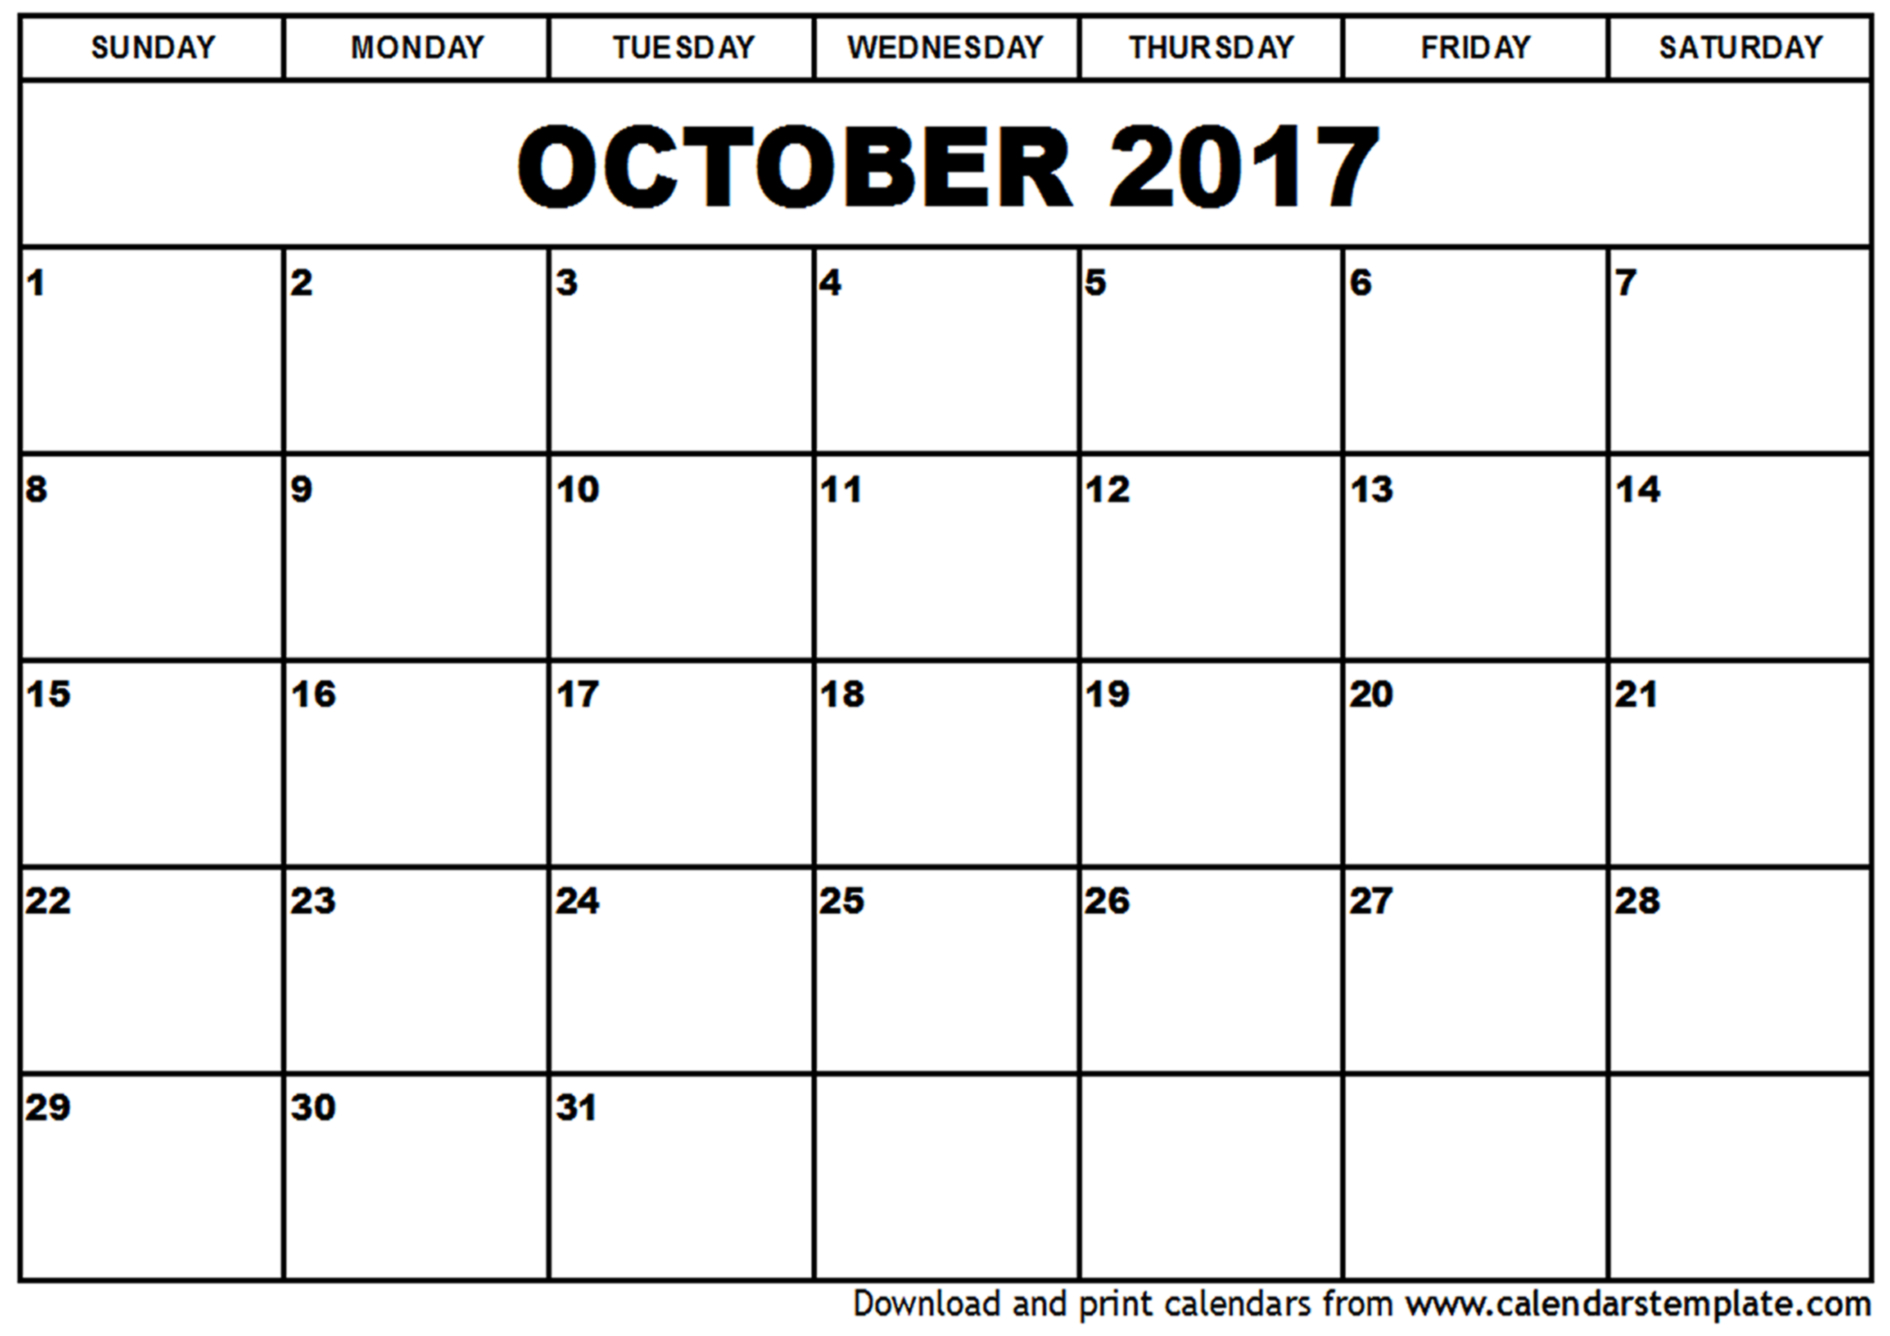 October 2017 Calendar With Holidays Uk | yearly calendar printable